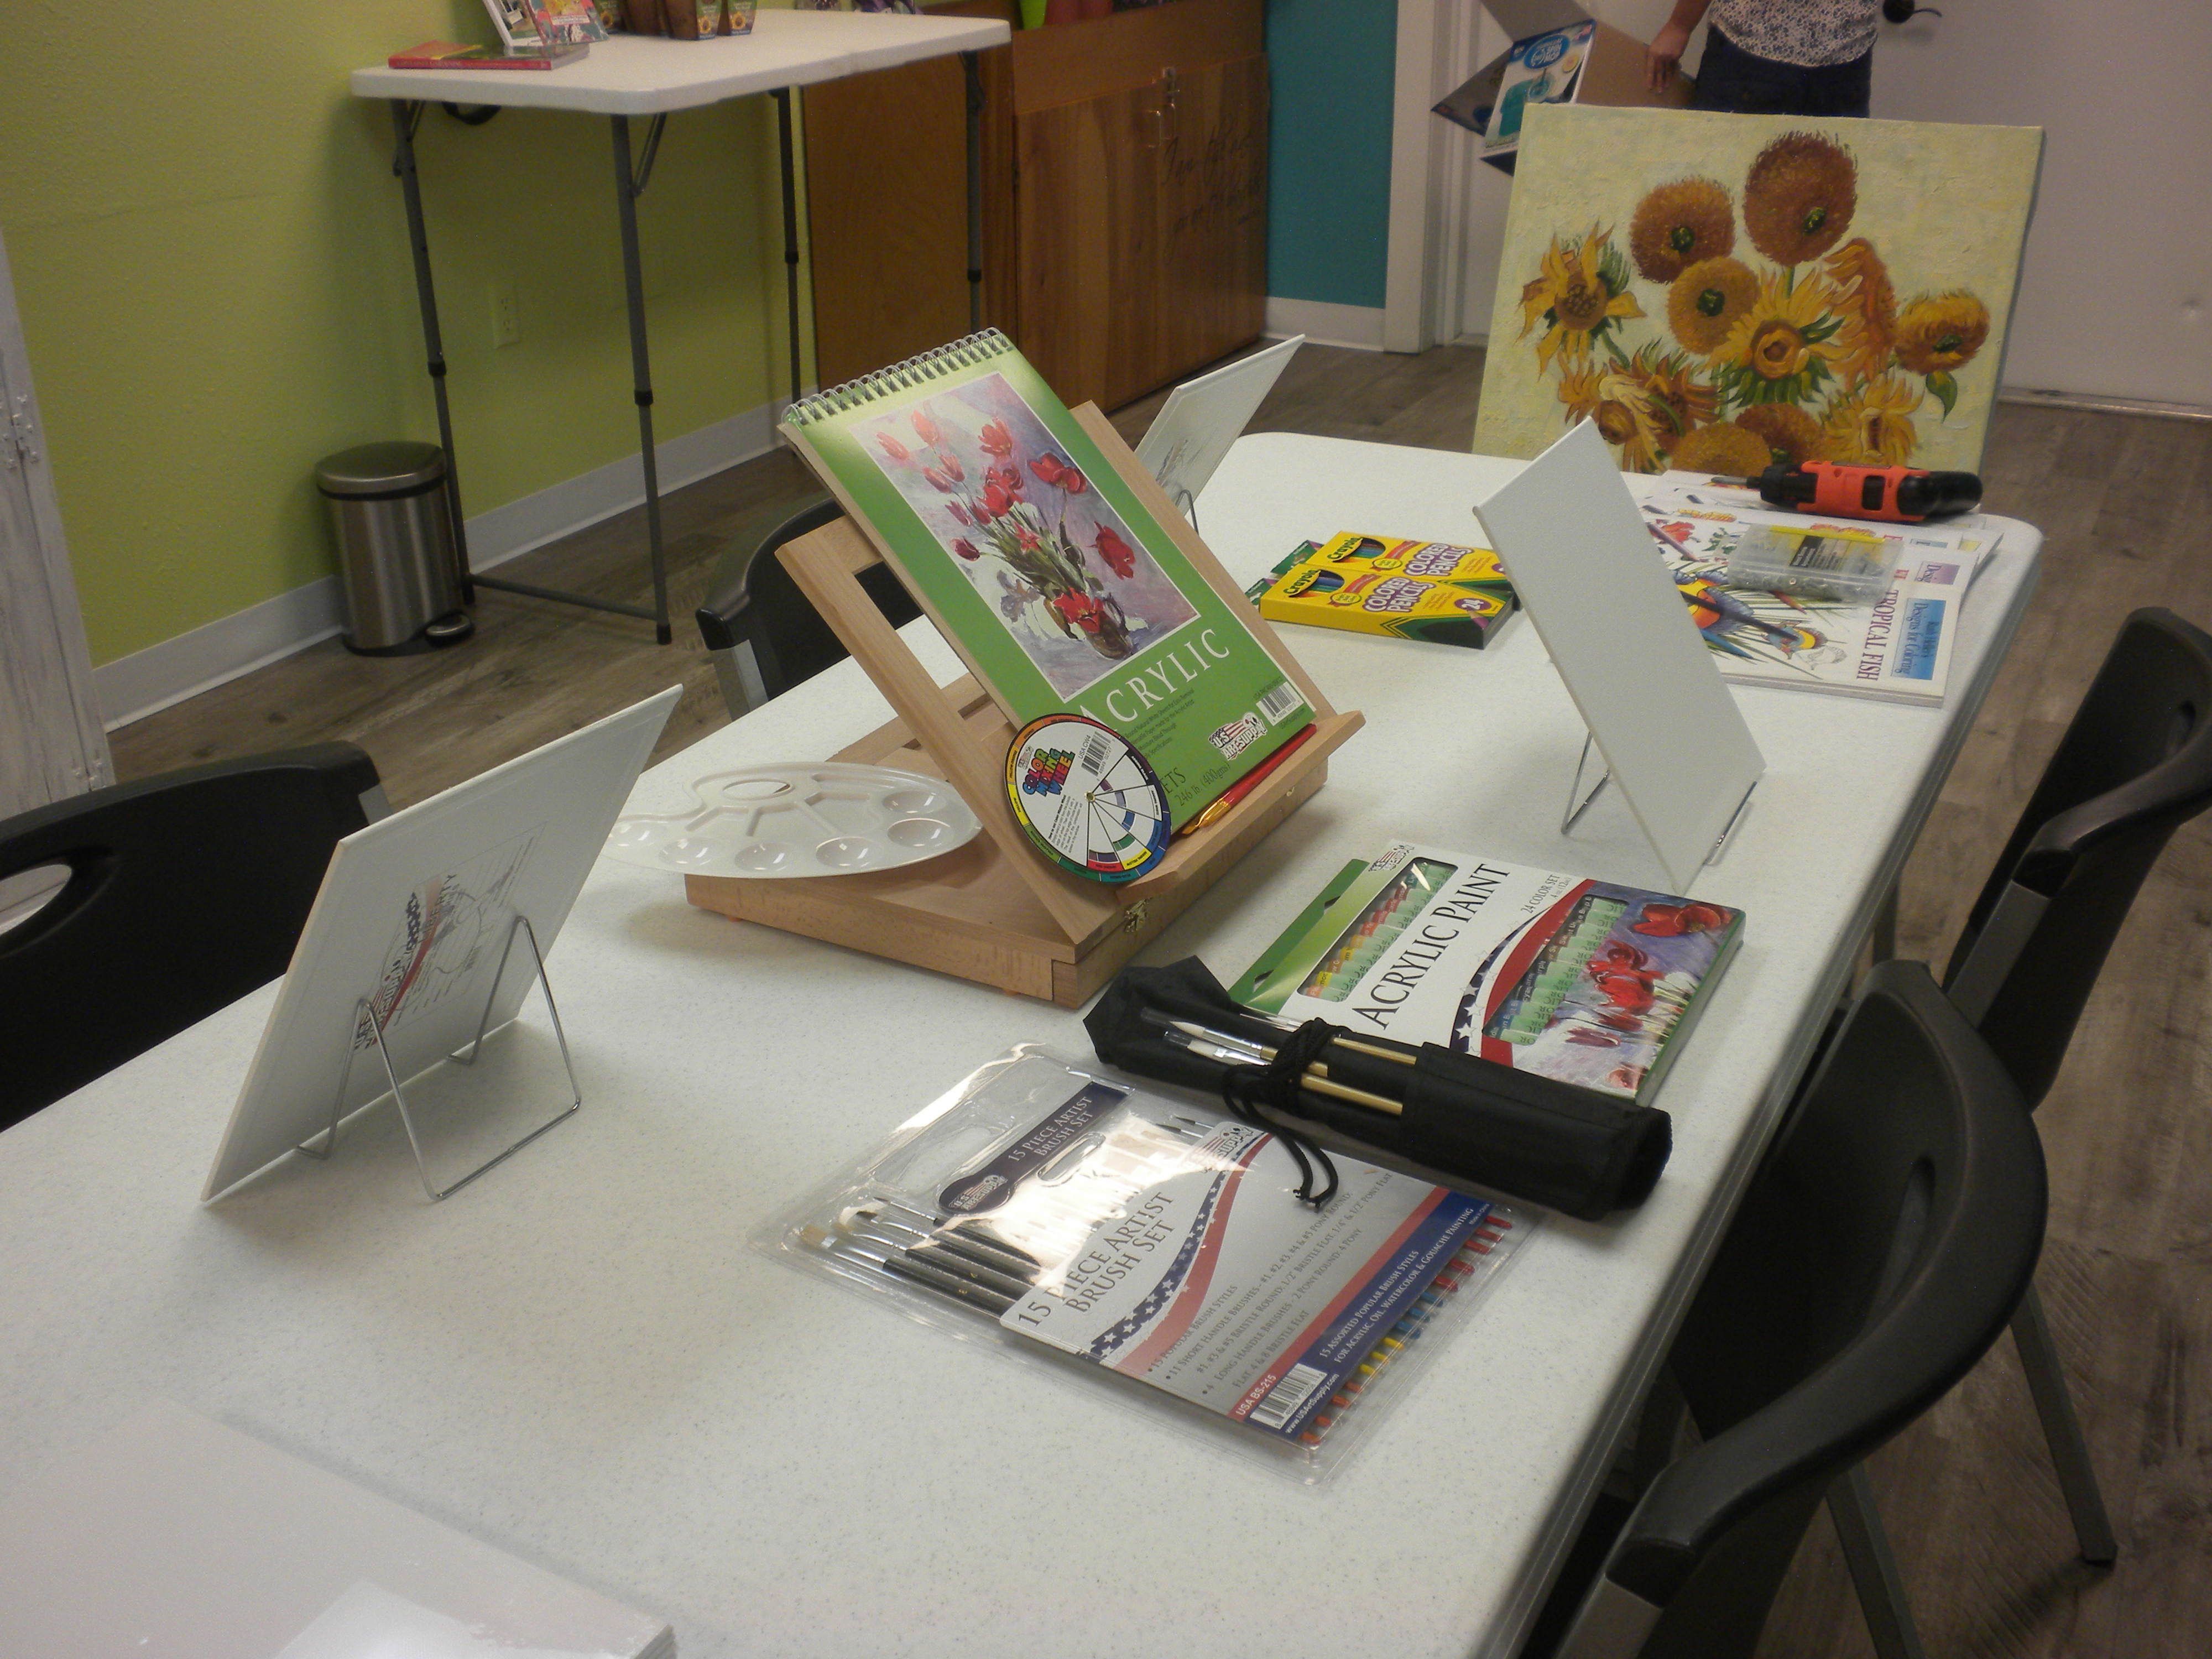 Daycations adult day care art class